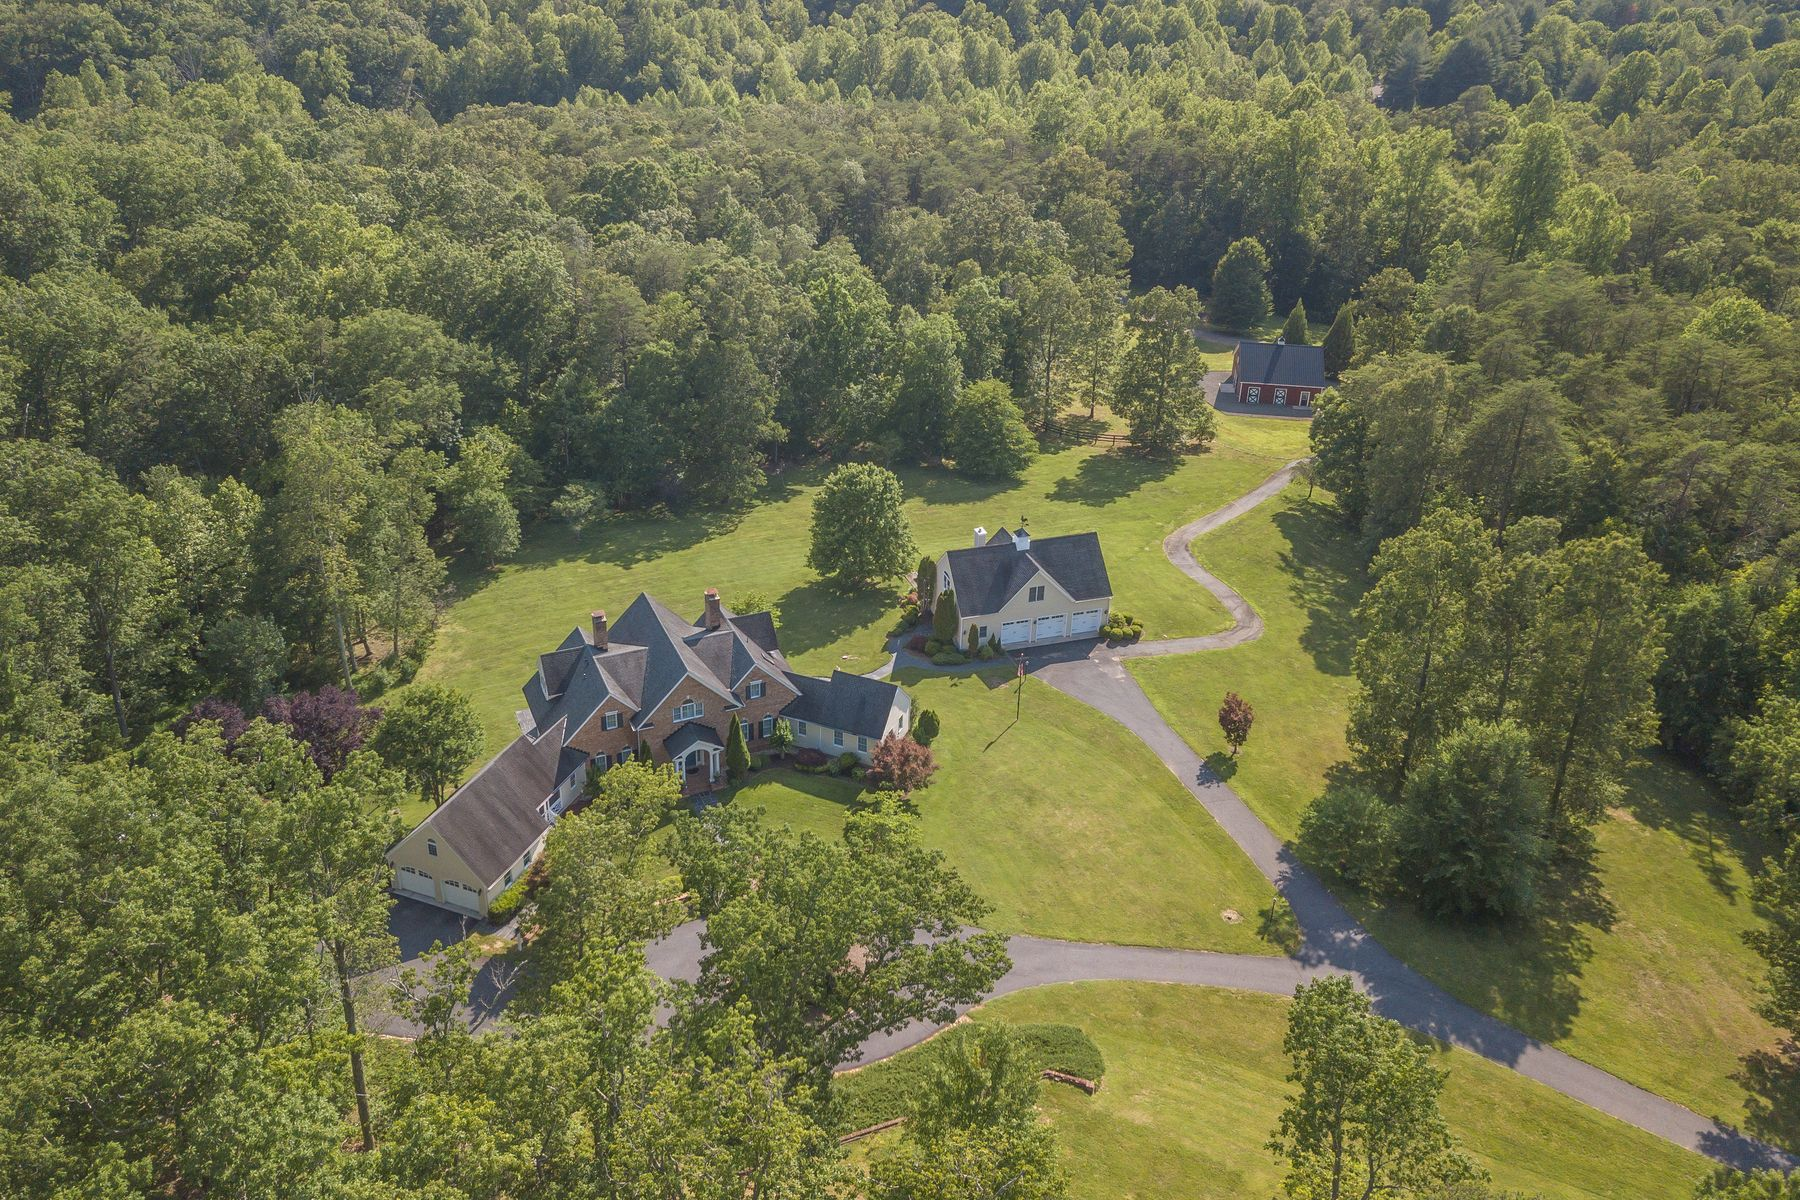 Single Family Homes for Sale at Glendarroch 4865 Gilbert Station Rd, Barboursville, Virginia 22923 United States